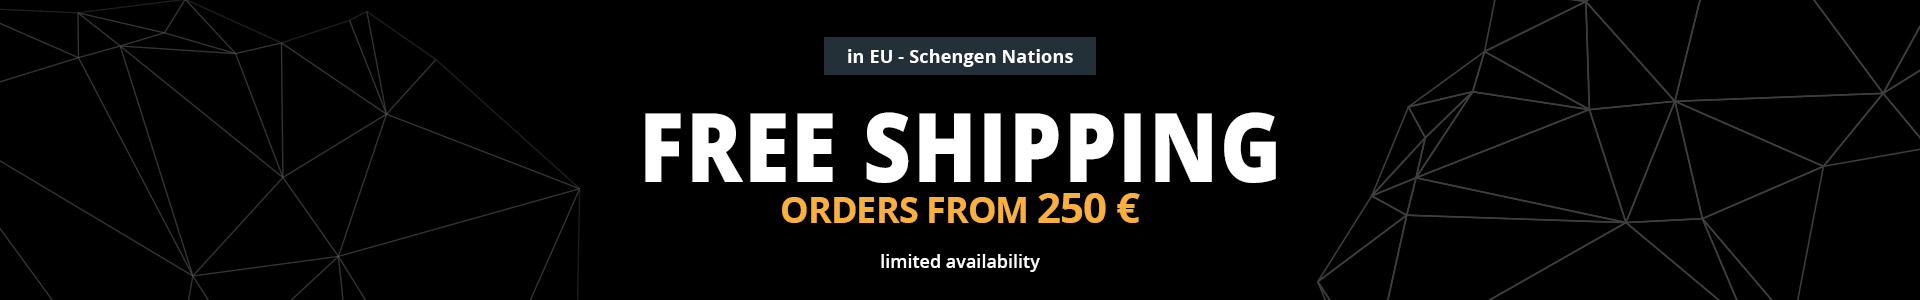 free shipping in eu from order 250 euro